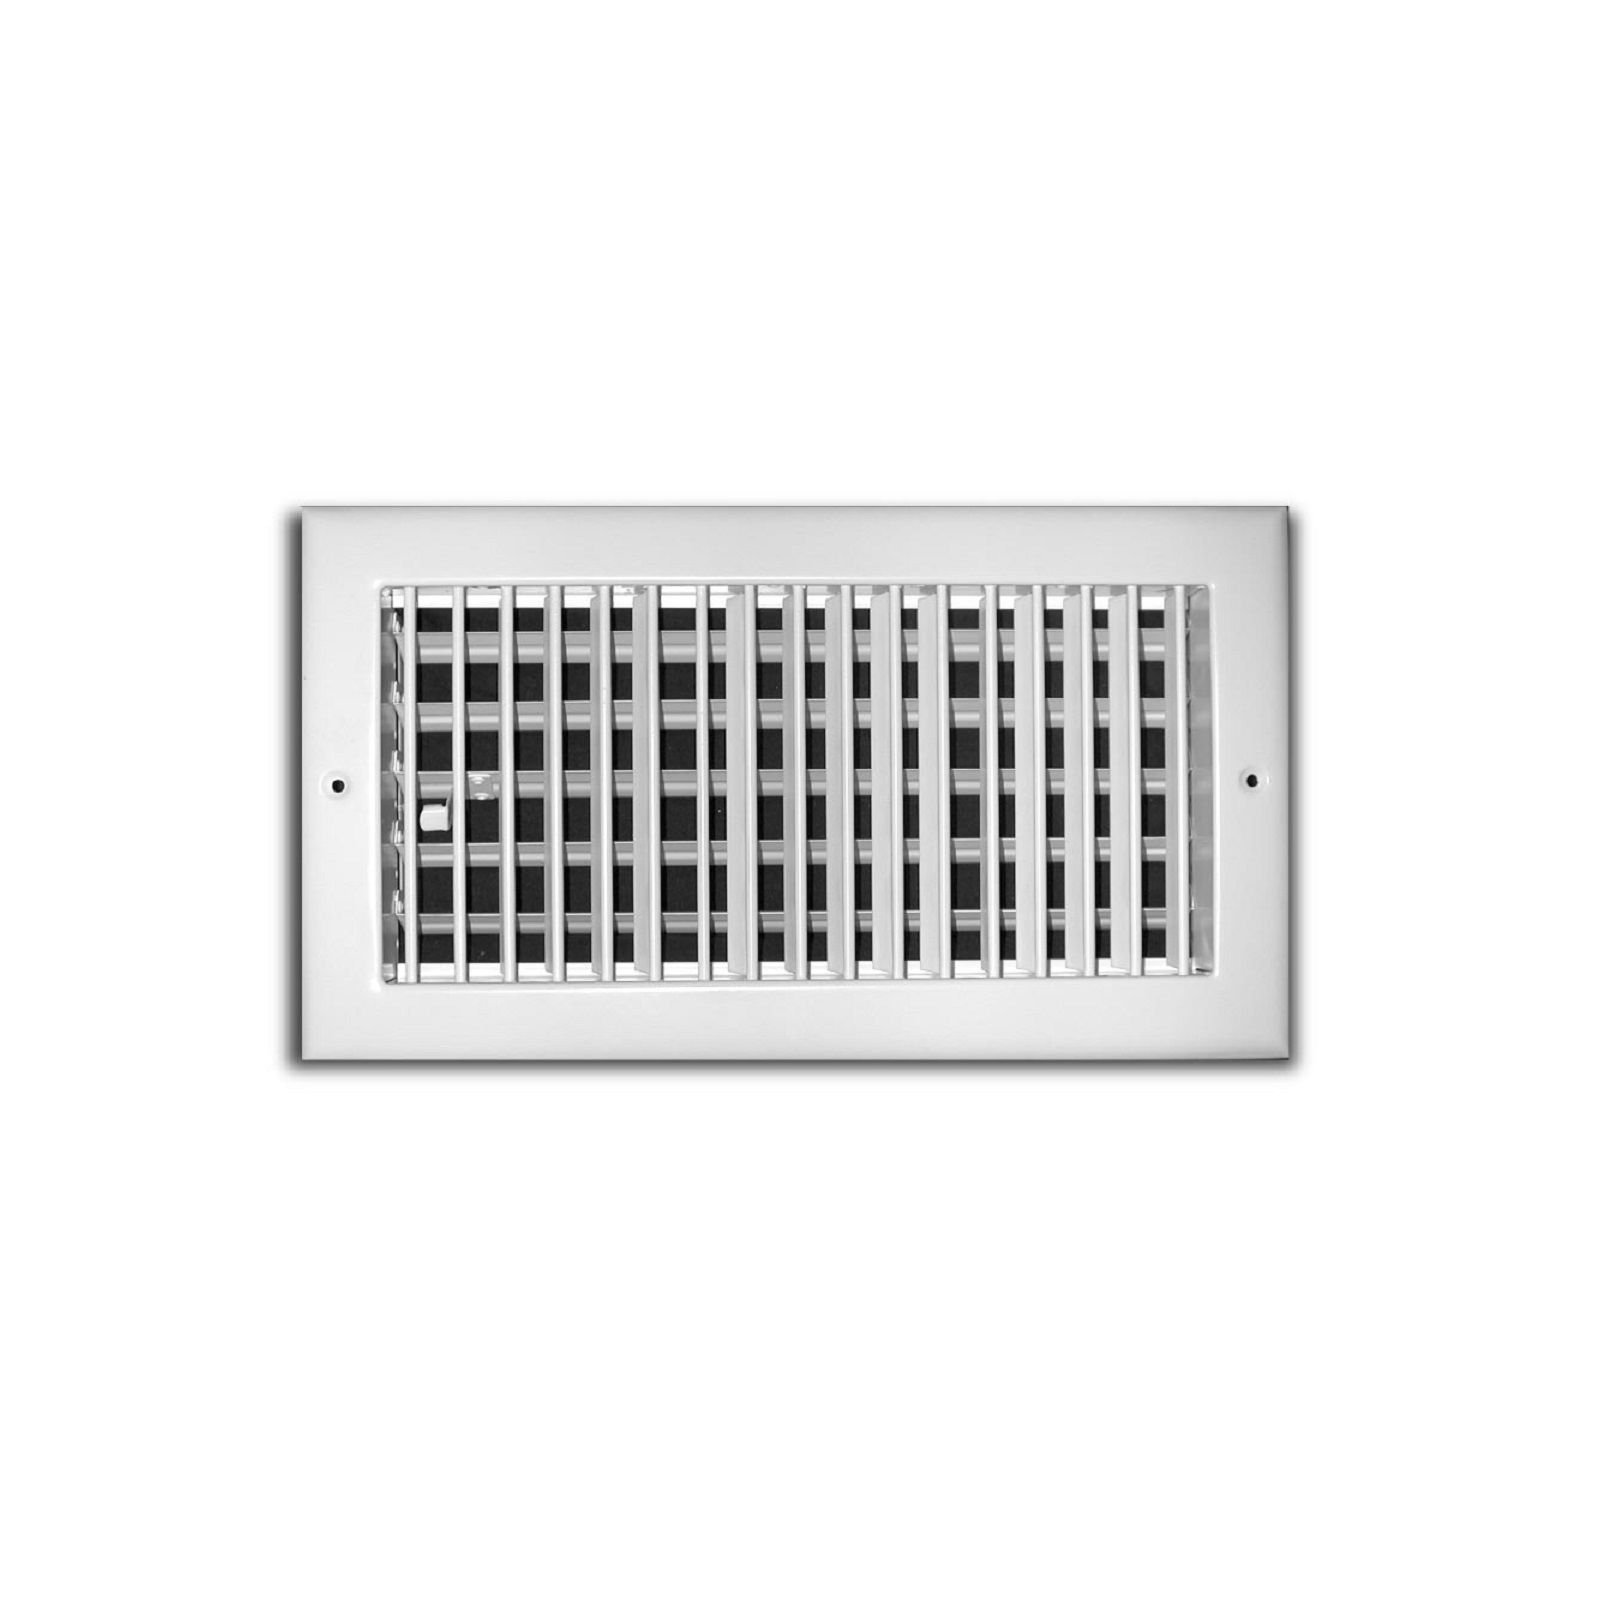 "TRUaire 210VM 06X04 - Steel Adjustable 1-Way Wall/Ceiling Register With Multi Shutter Damper, White, 06"" X 04"""